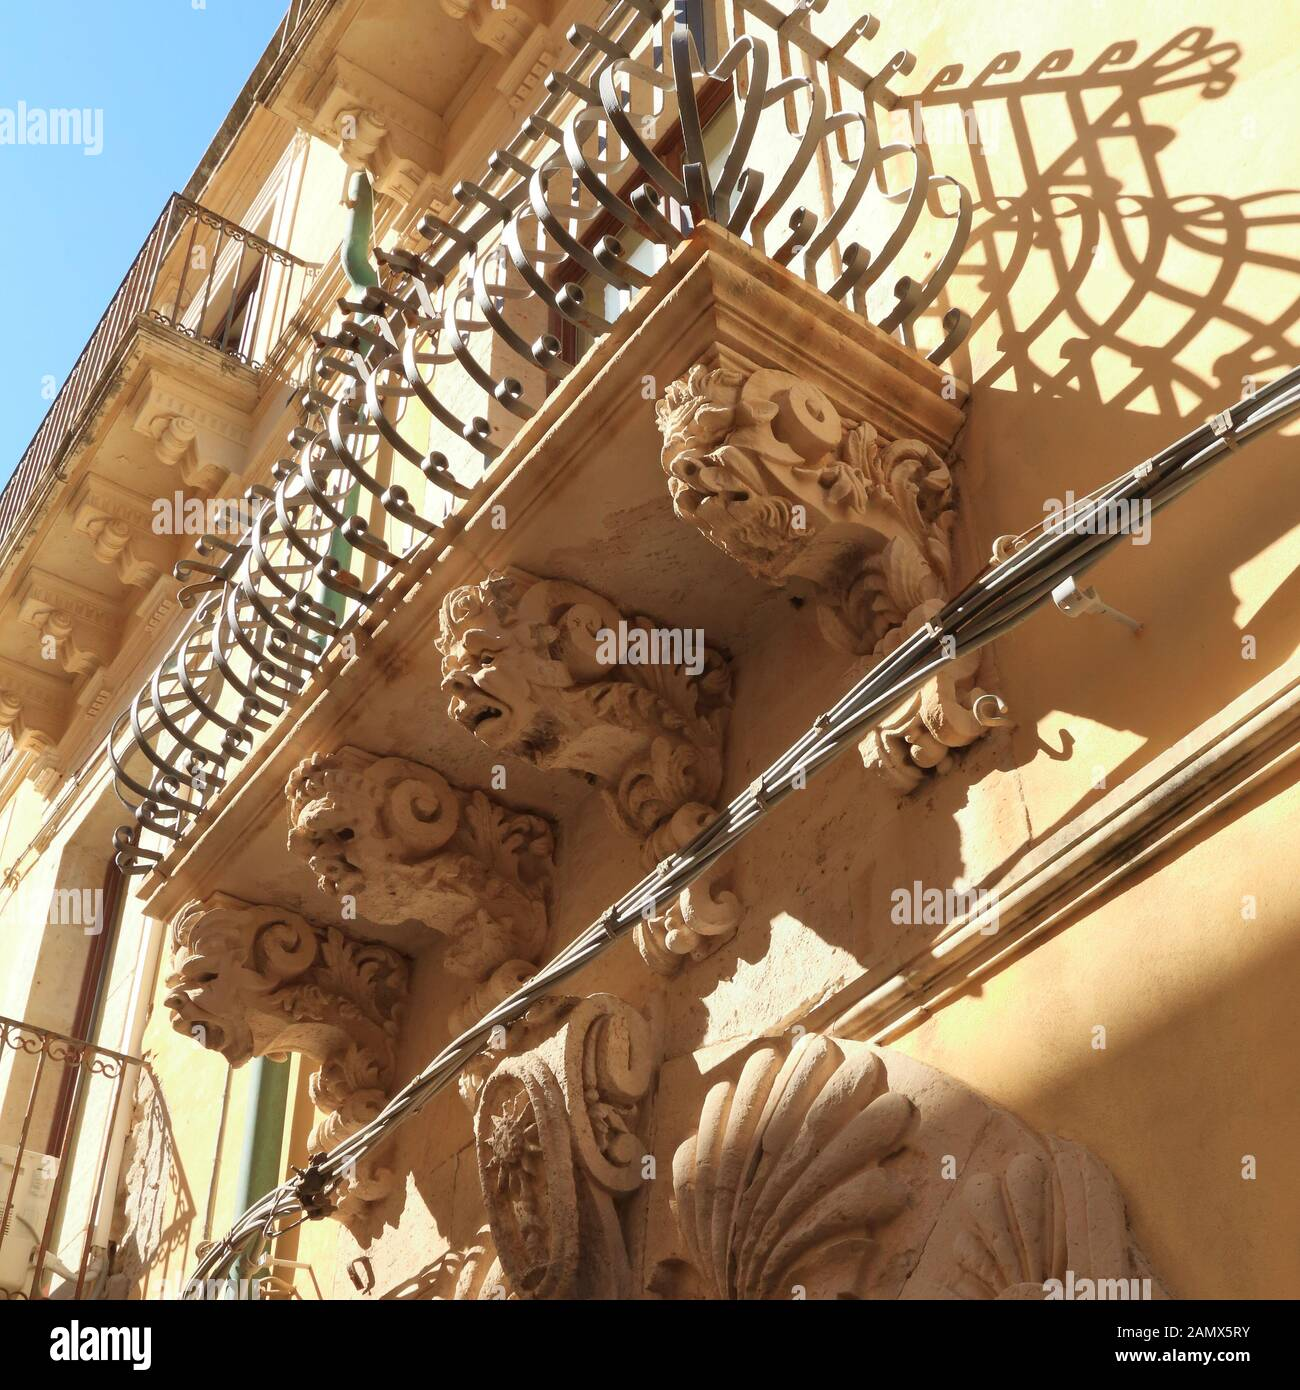 Sculptured balcony brackets. Baroque architecture in Sicily Stock Photo